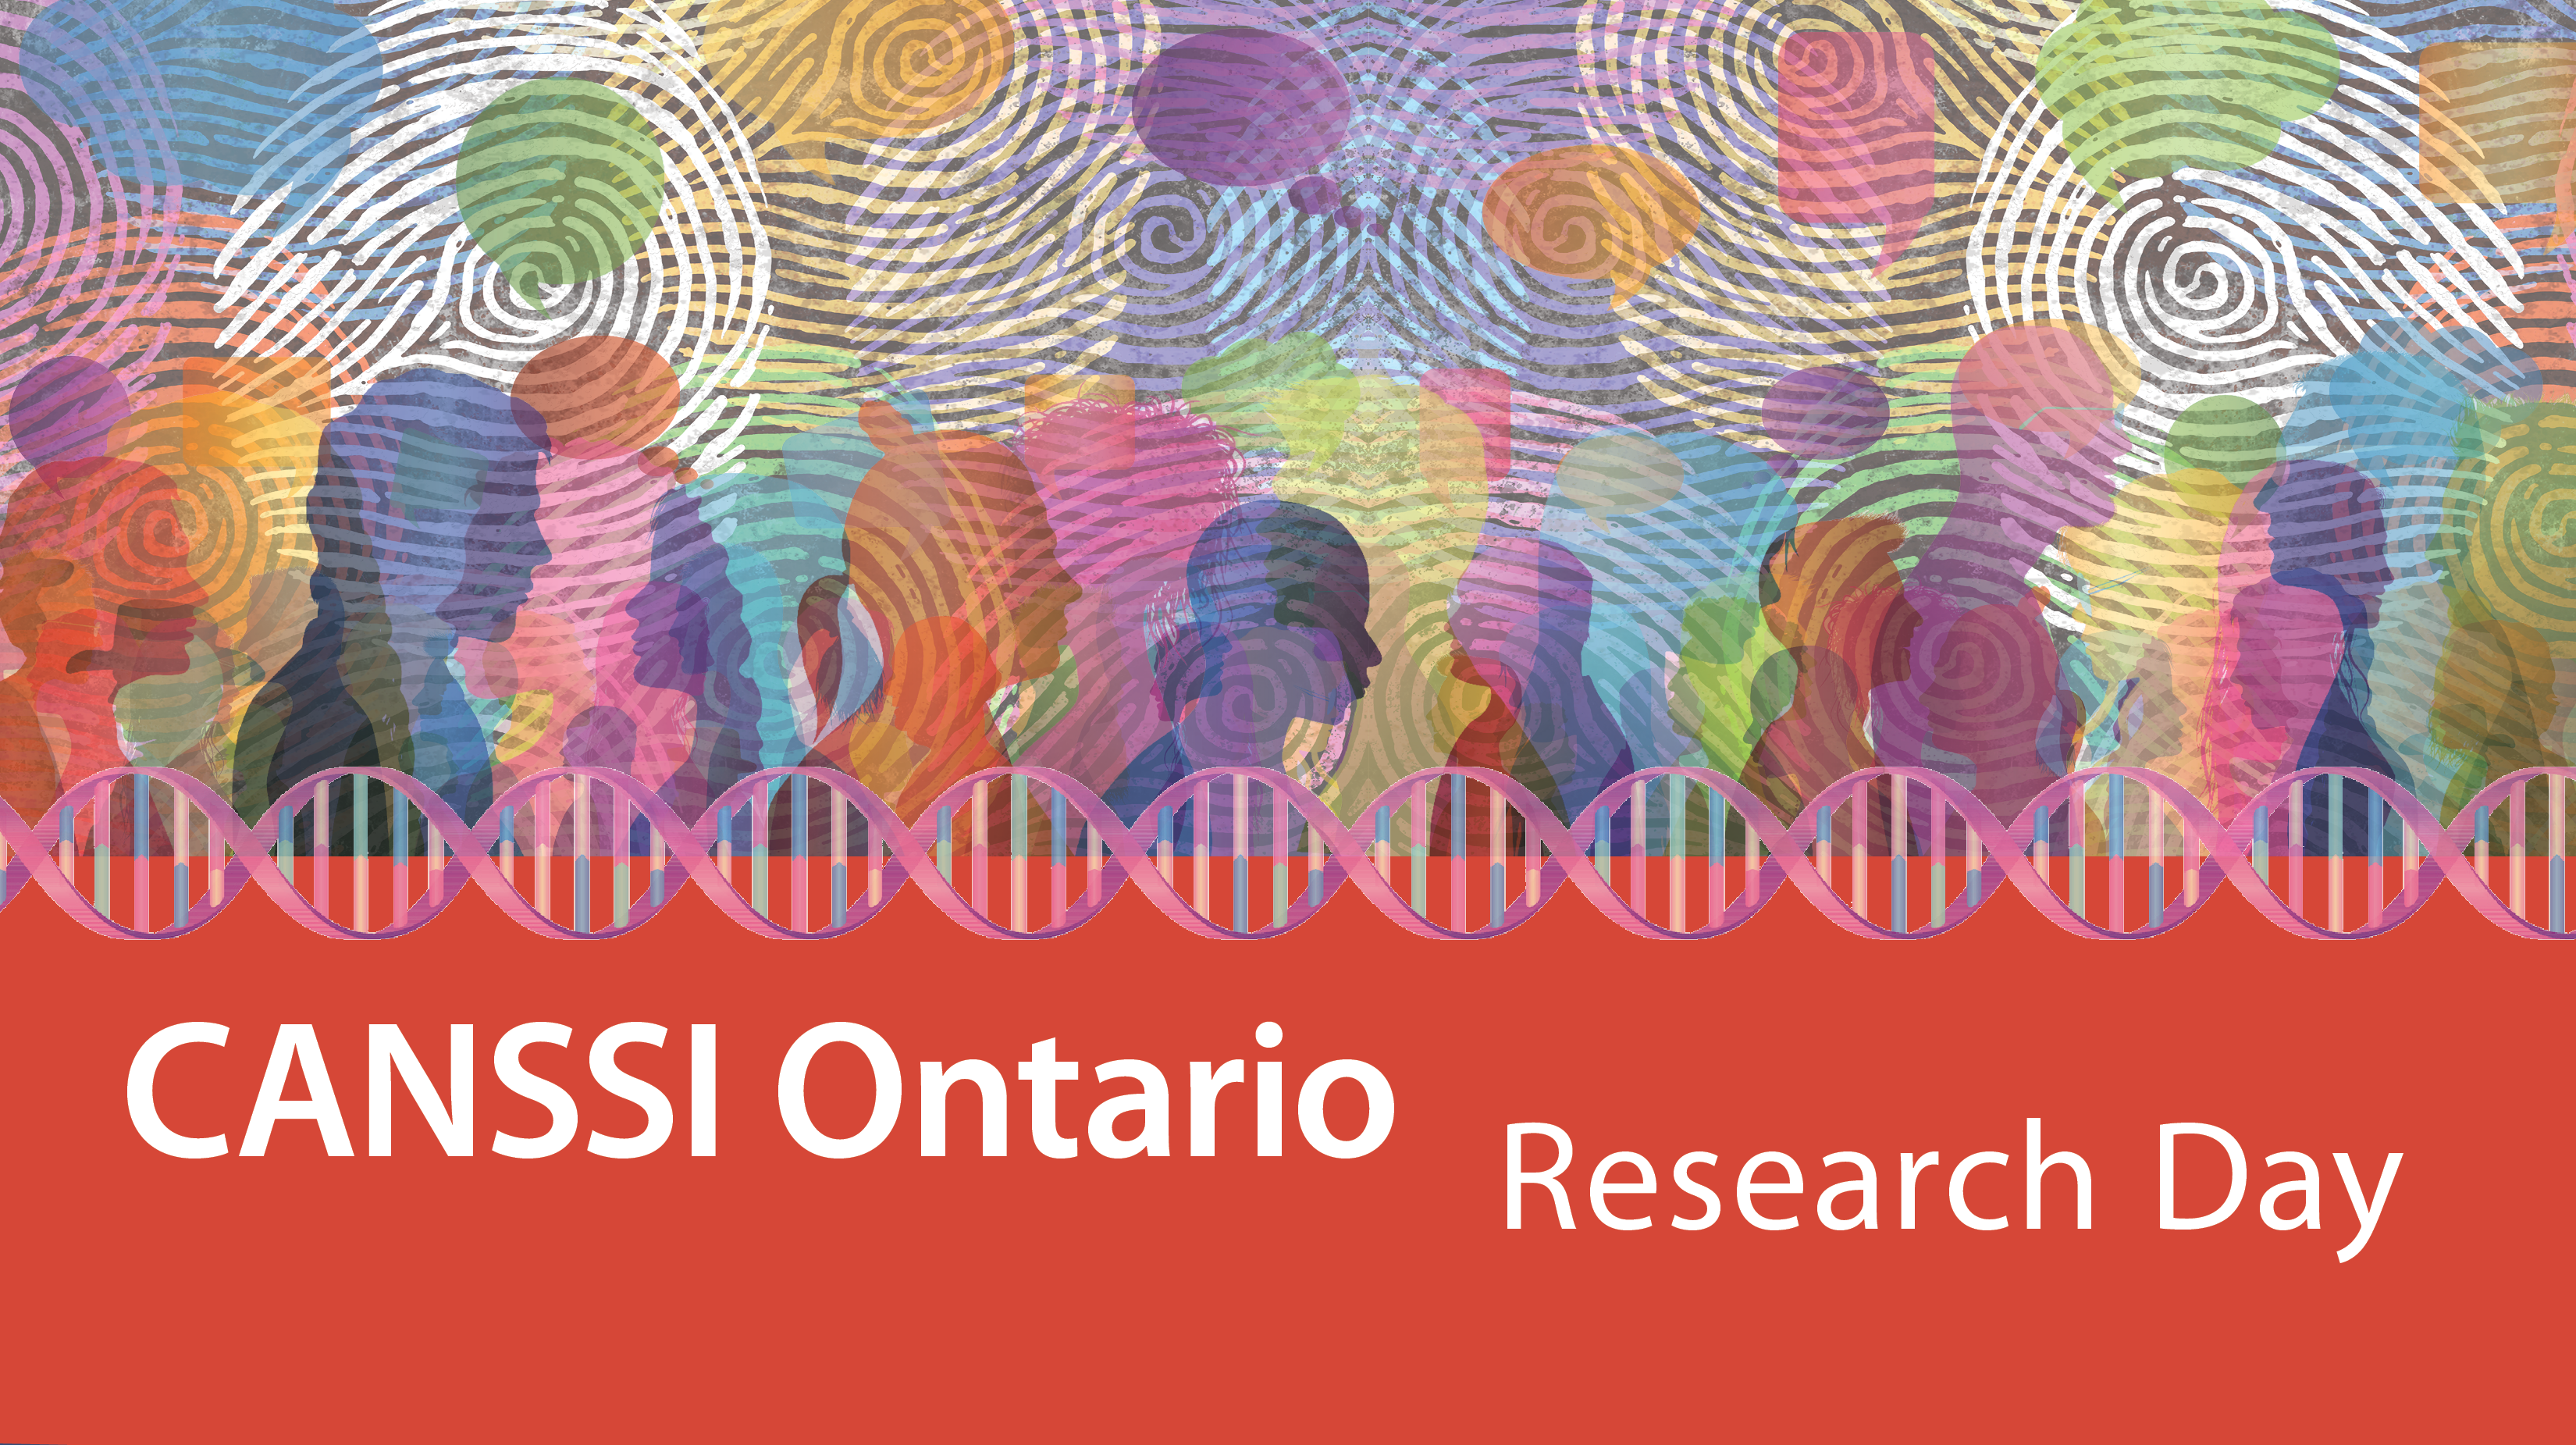 CANSSI Ontario Research Day